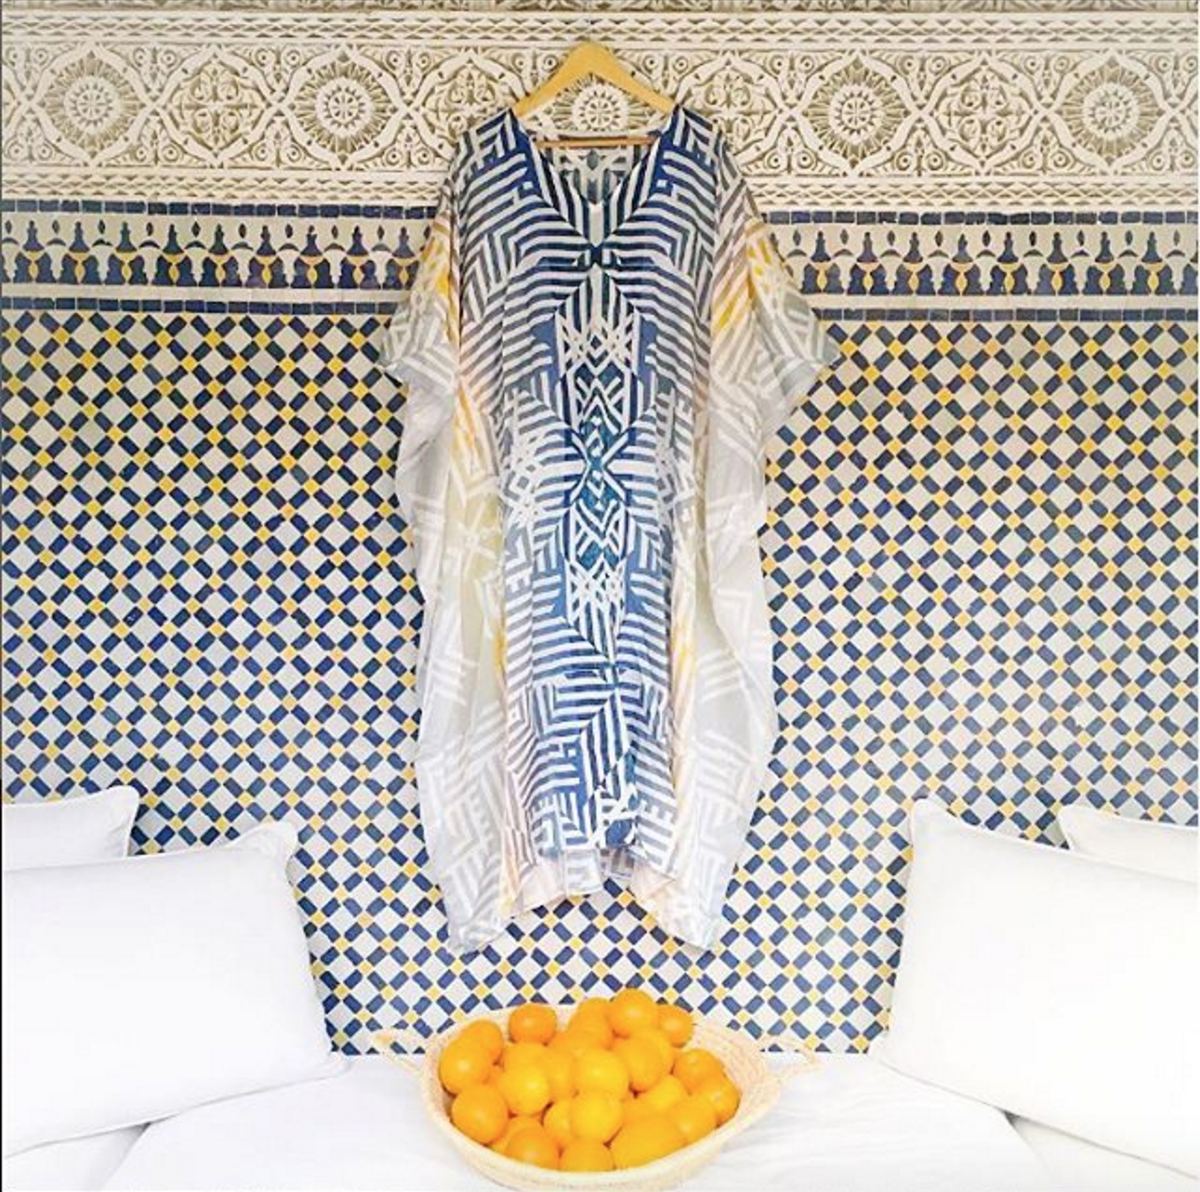 • #seasagespotted - the dusk kaftan - sneak peek of what was in @majesticdisorder suitcase during their most recent trip to morocco •